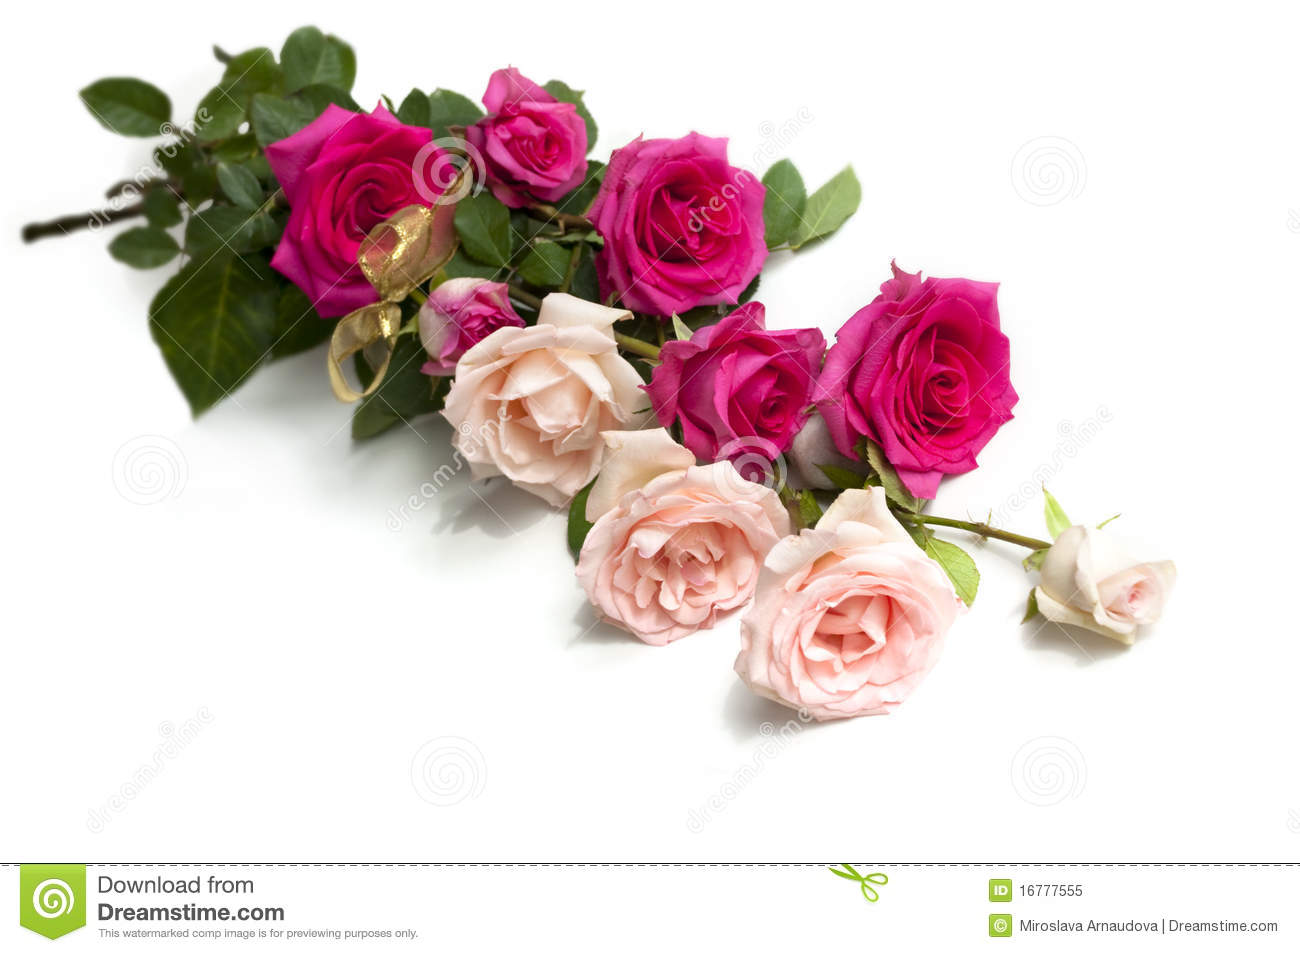 Beauty roses stock image image of flower natural background download beauty roses stock image image of flower natural background 16777555 izmirmasajfo